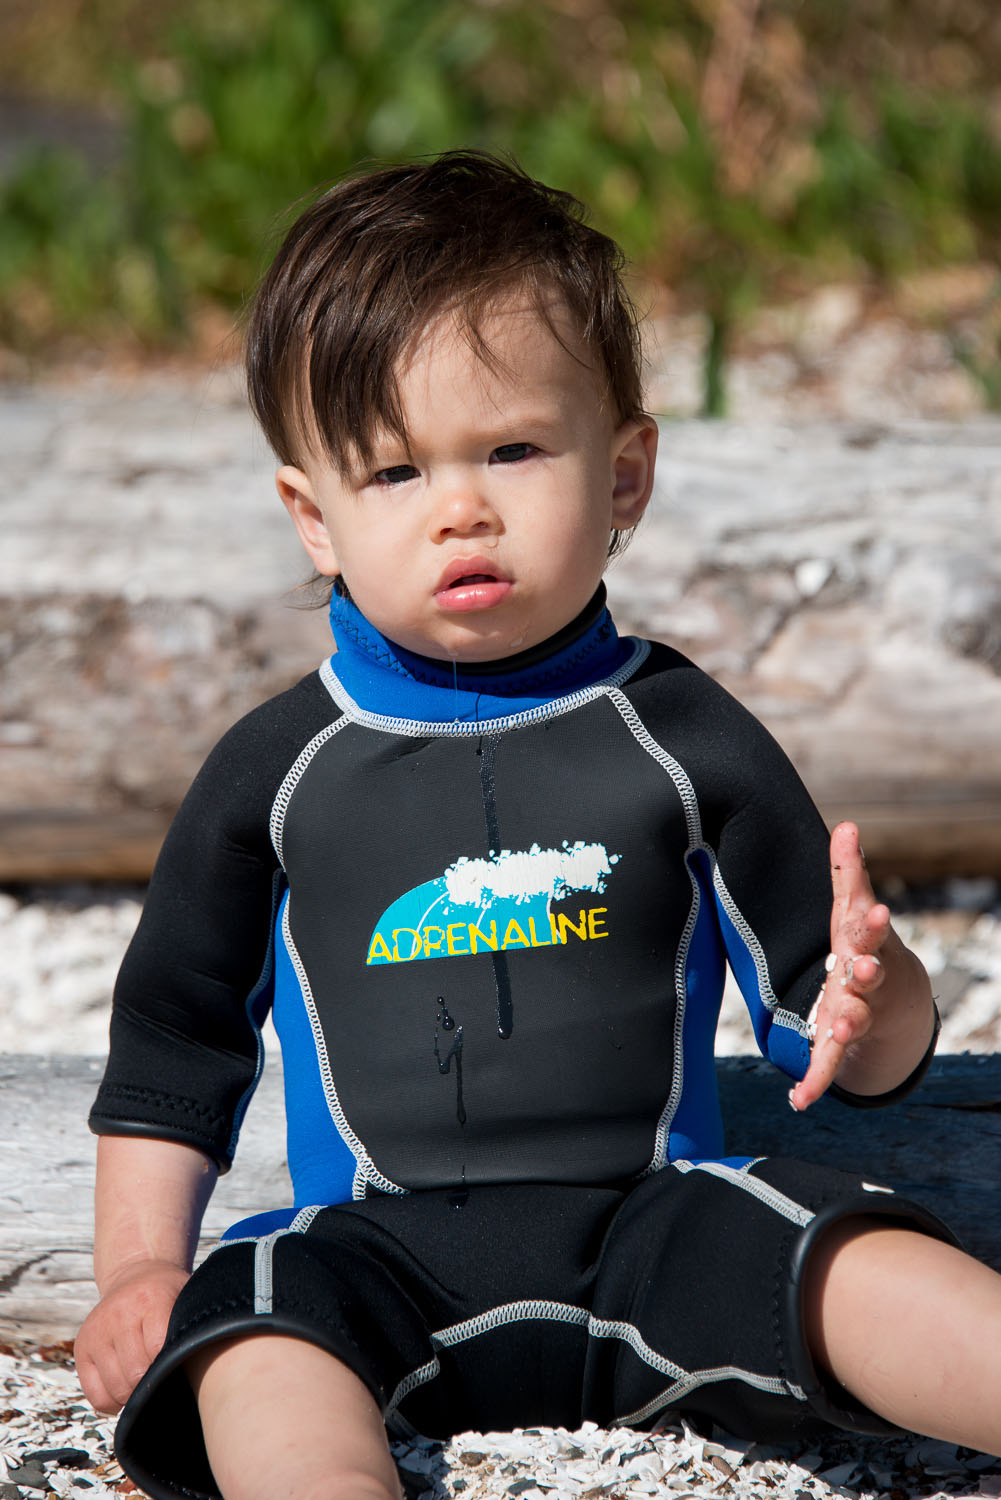 Hemingway modeling his wet suit while on Blackberry point